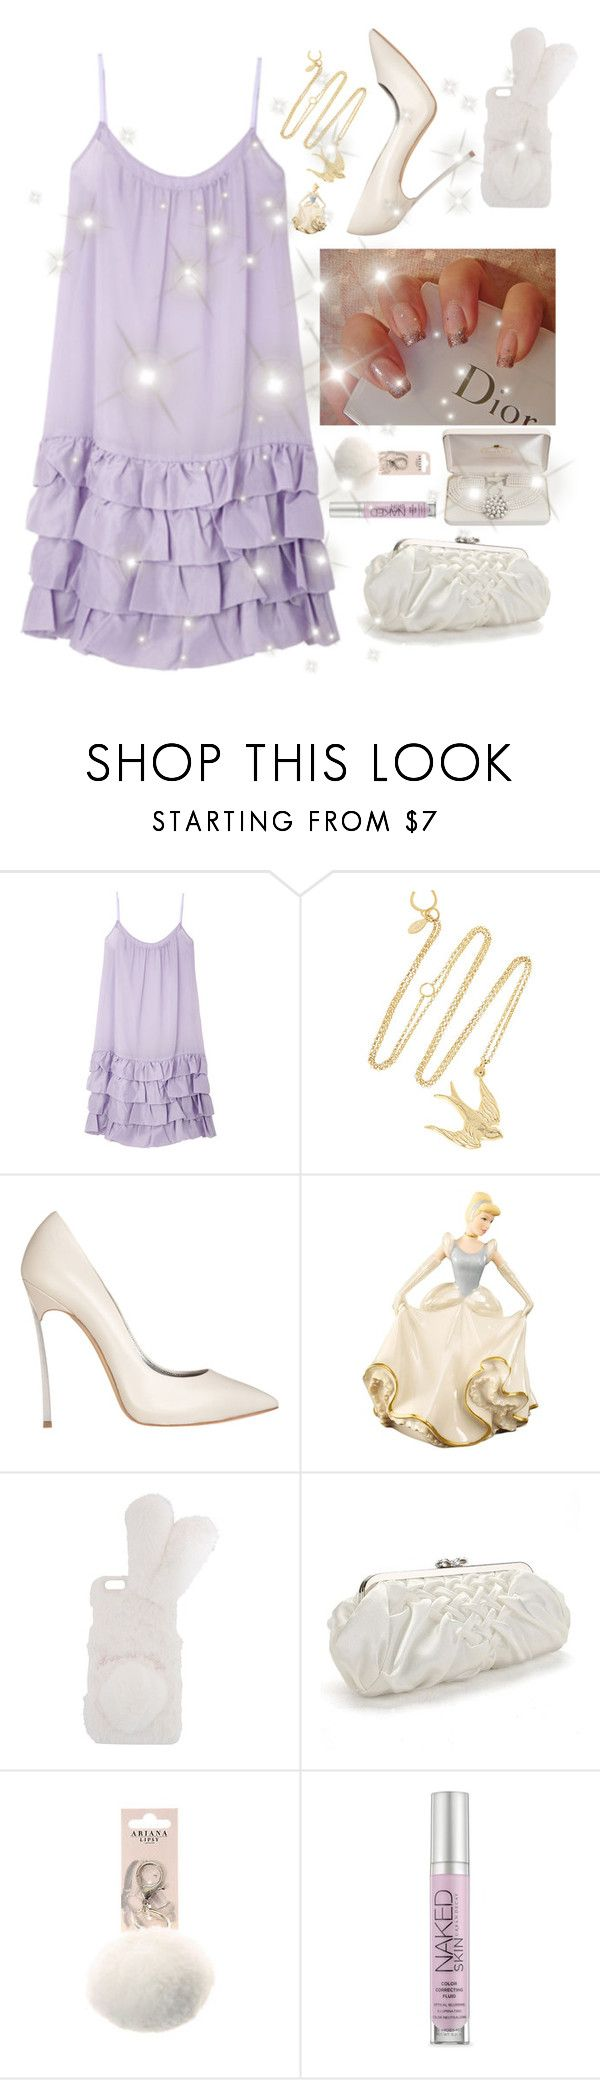 """ariana grande moonlight "" by faanciella on Polyvore featuring Giles & Brother, Casadei, Lenox, Carlo Fellini and Urban Decay"